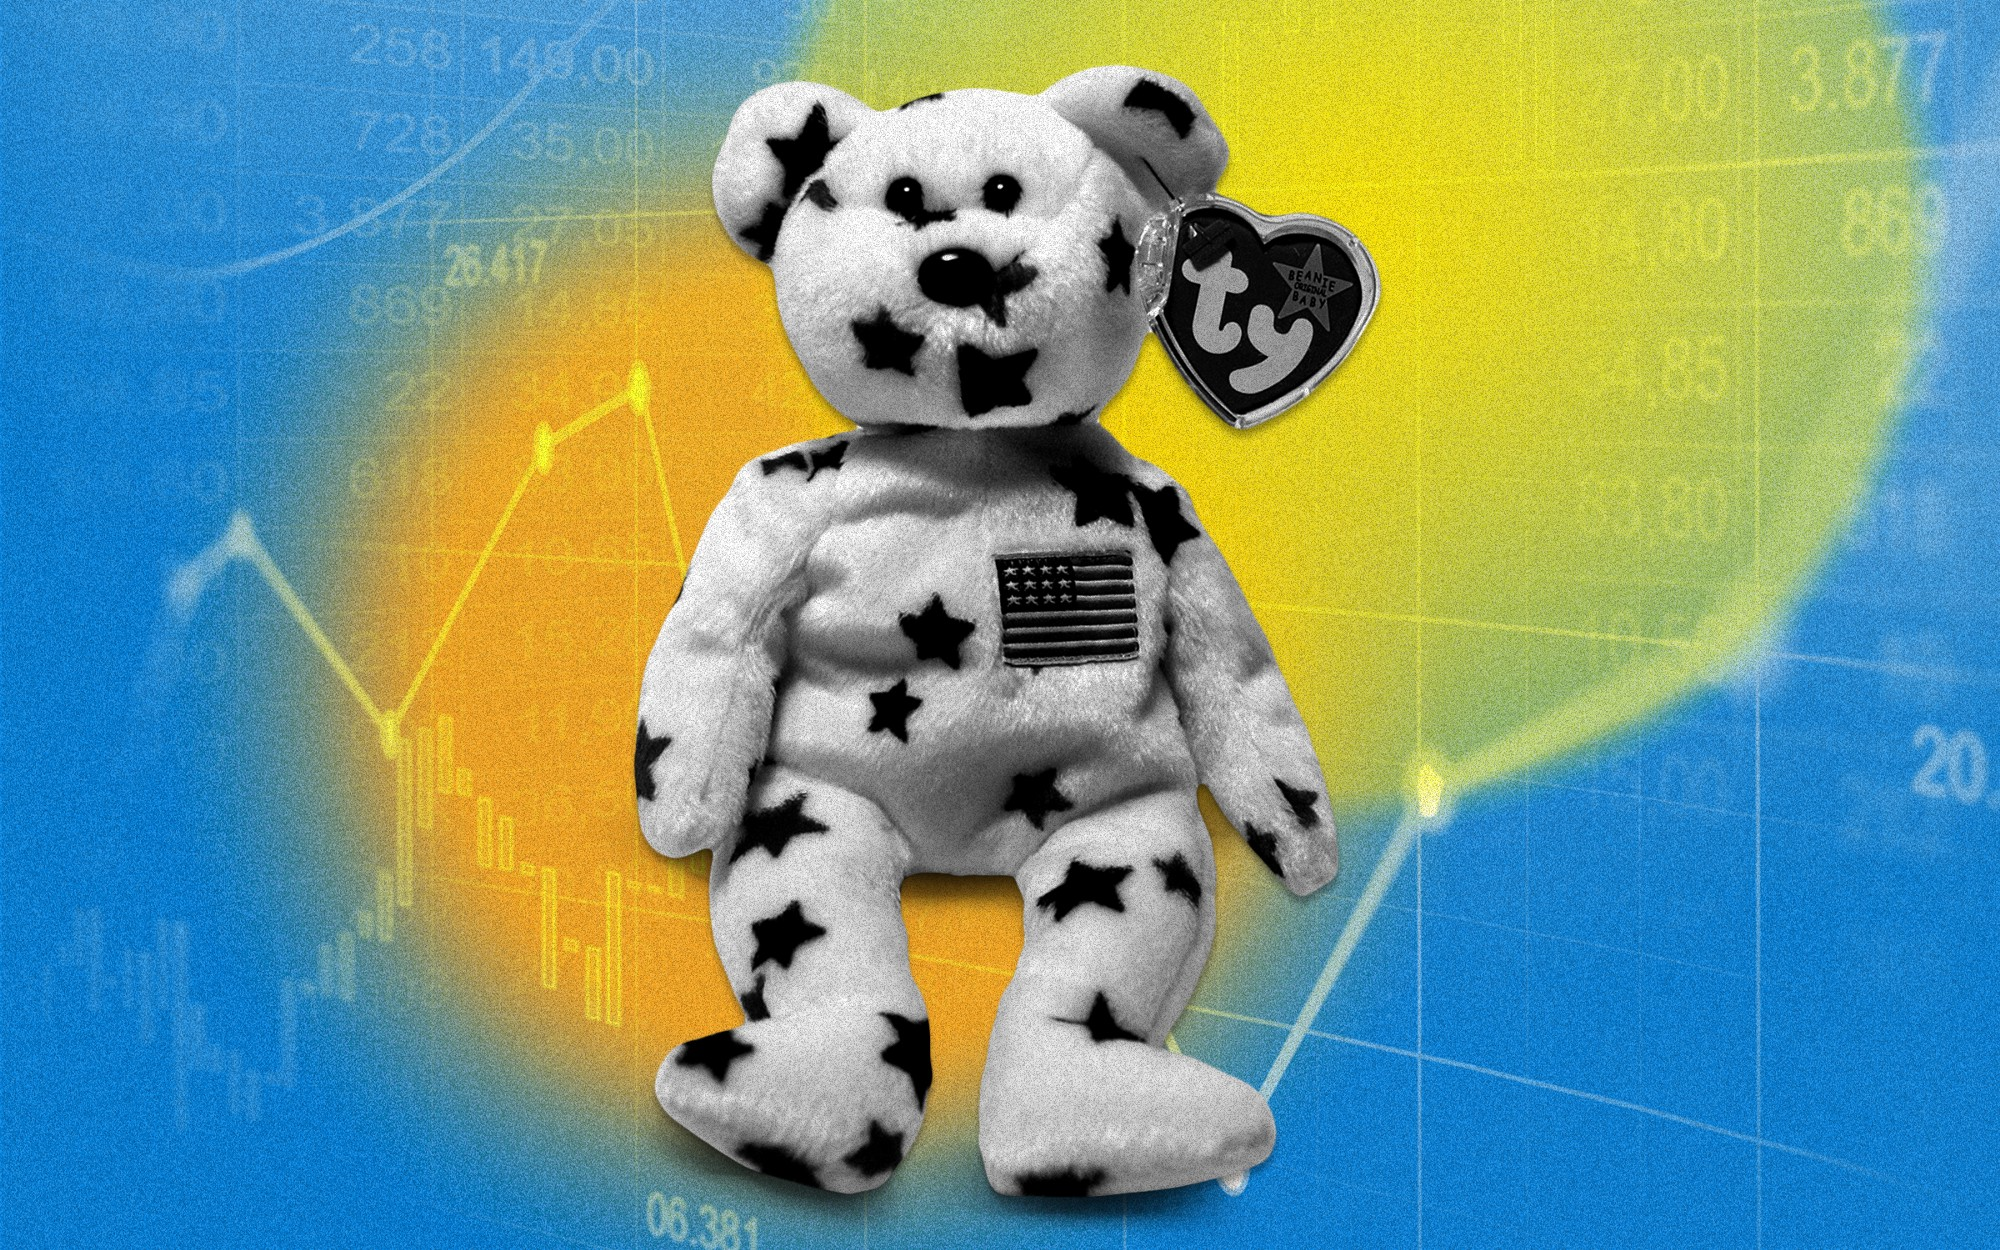 An illustration of a Beanie Baby with a star print and the U.S. flag on its chest. Behind the beanie baby is a generic stock market image.